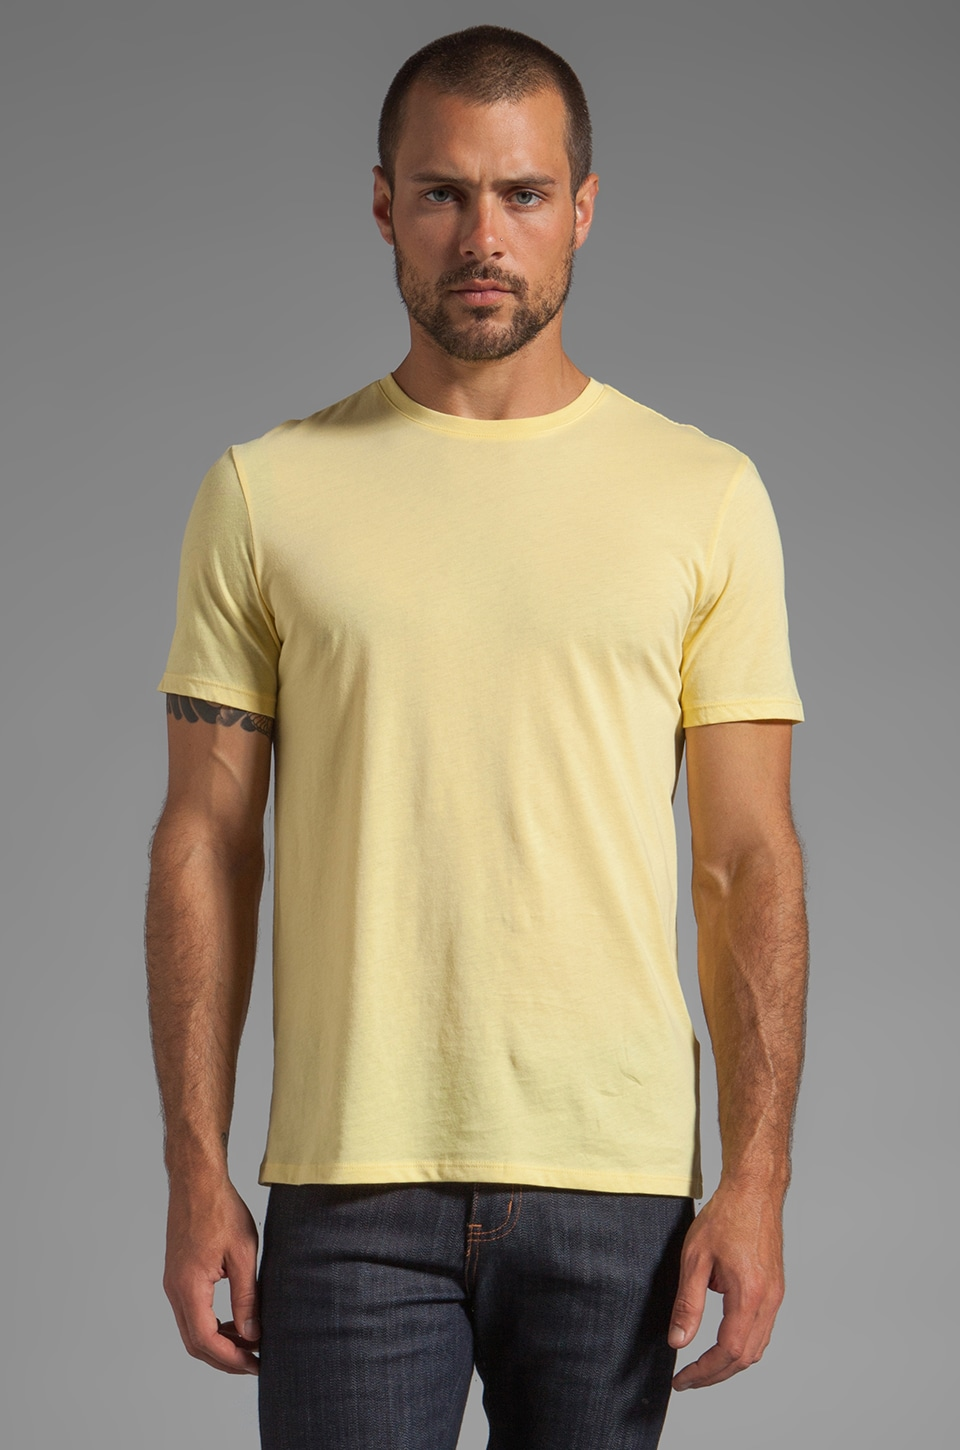 Vince Crew Neck in Lemon M